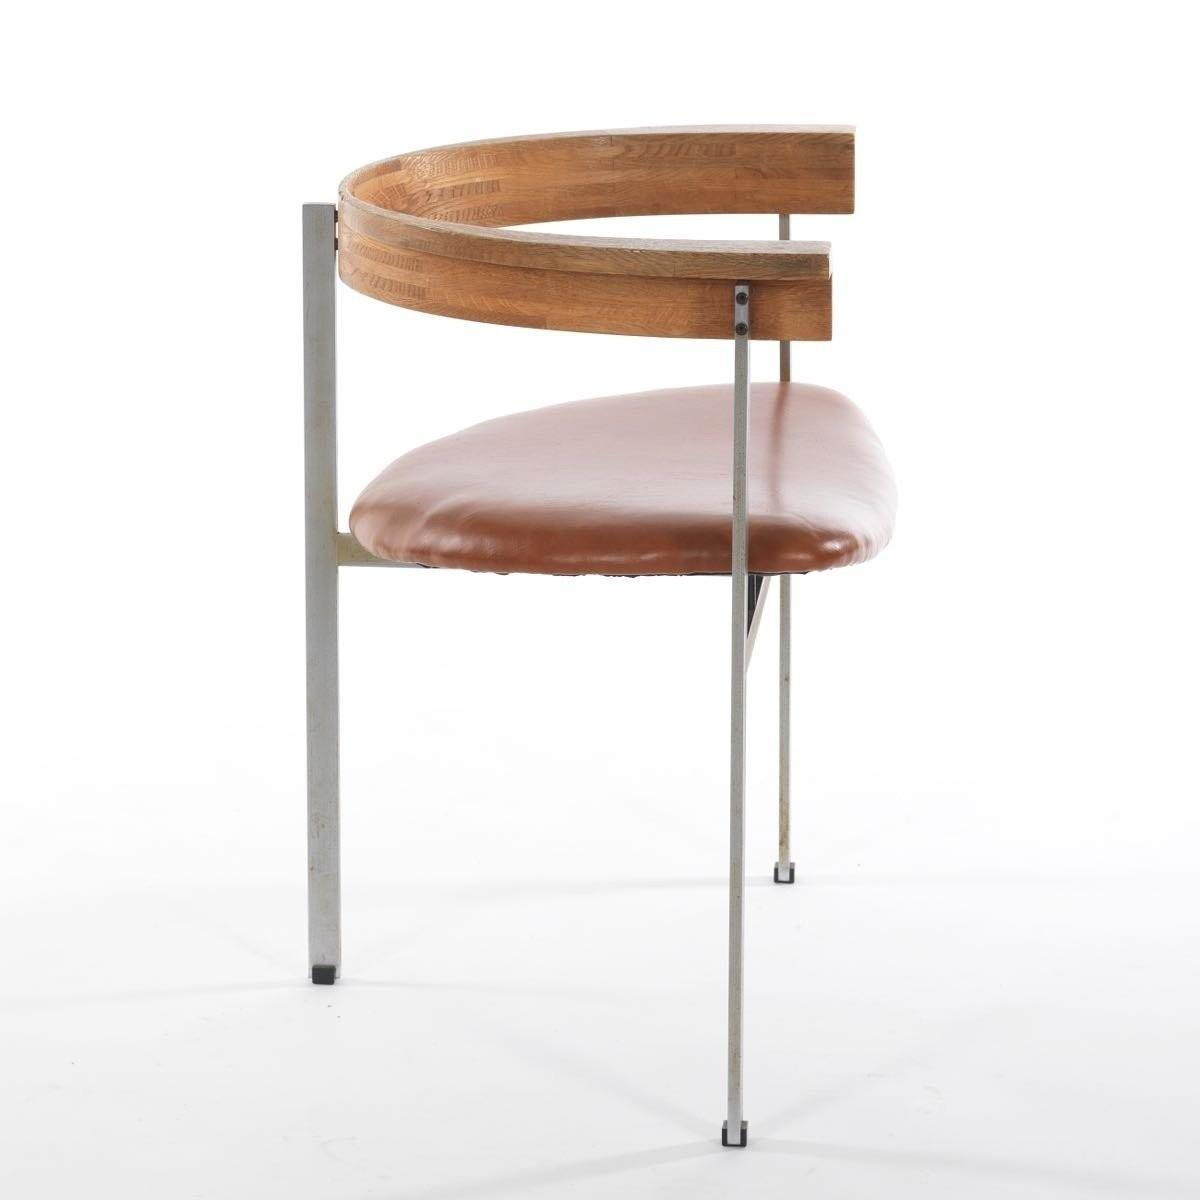 Poul Kjaerholm Kold Christensen Desk Chair